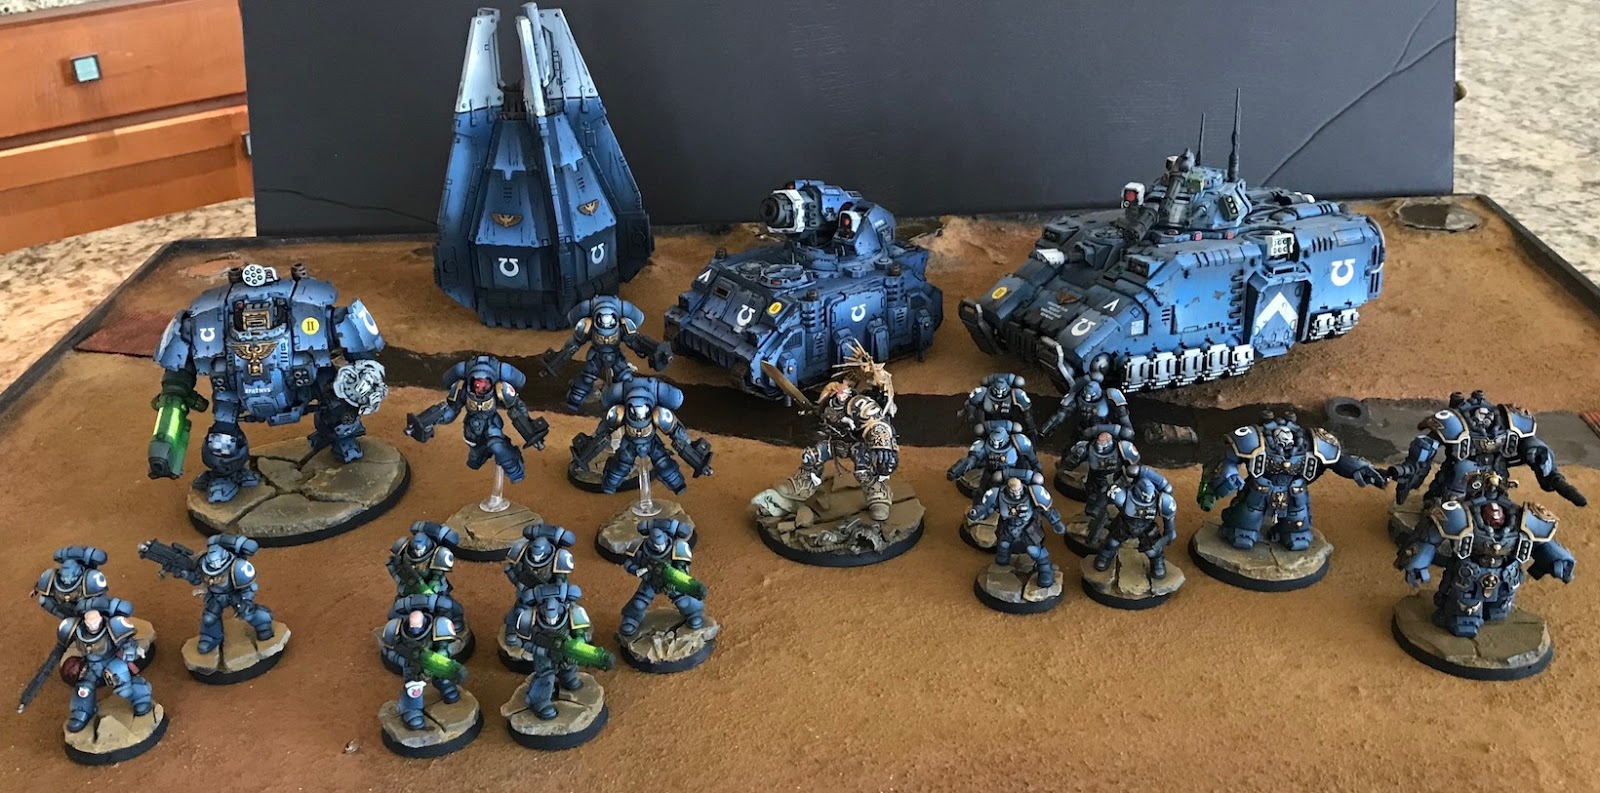 Ultramarines Army 40k Hobby Blog: Primar...